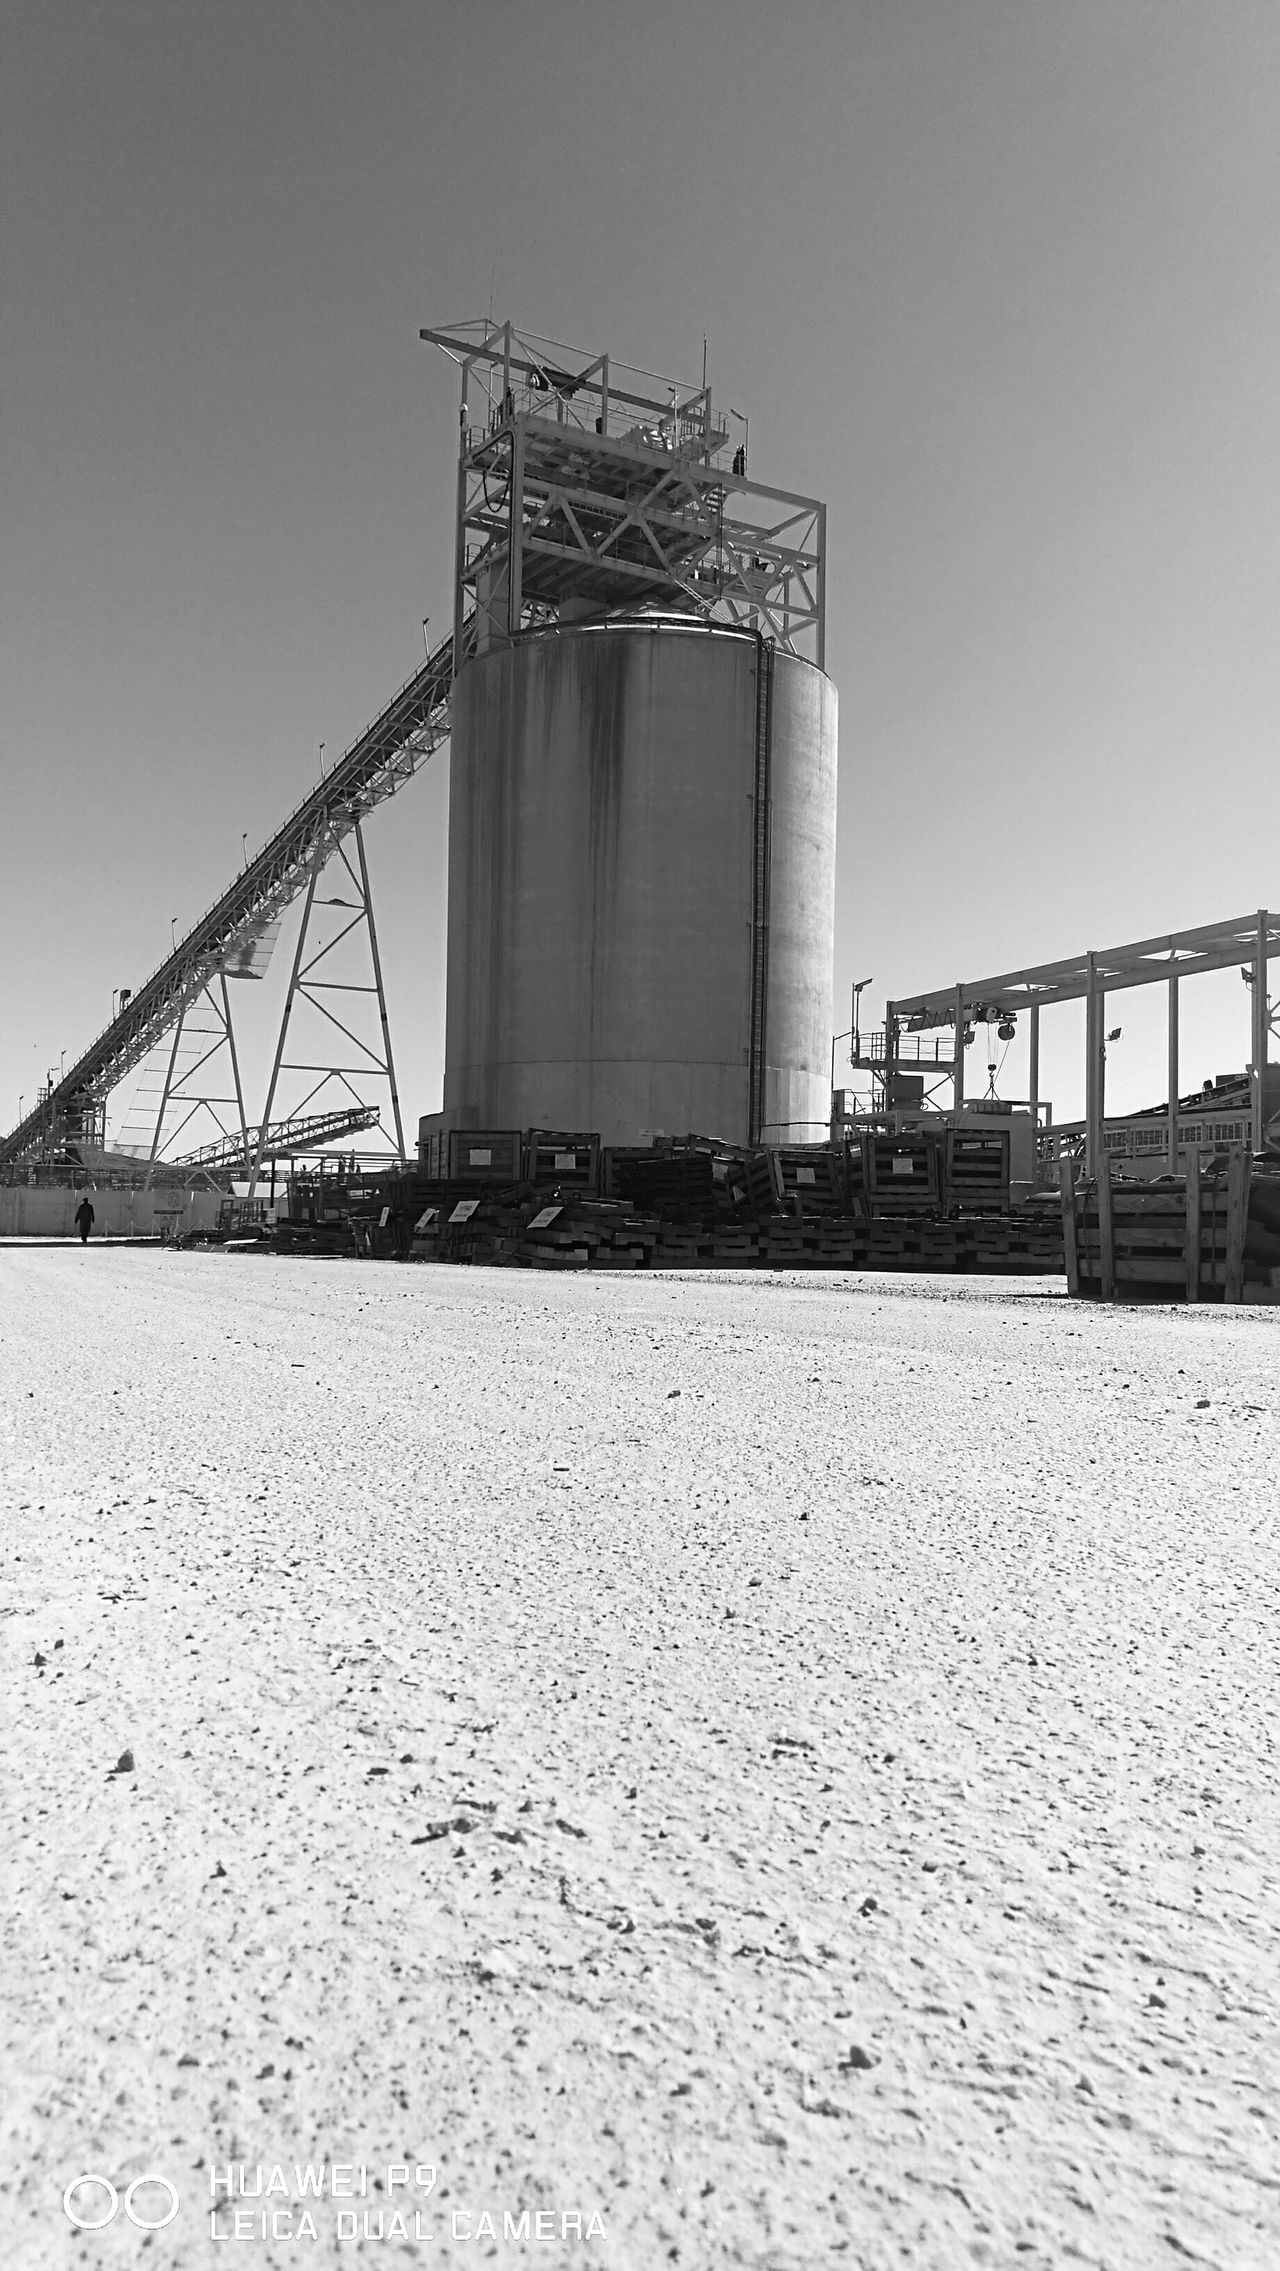 Silo Mining Industry Gold